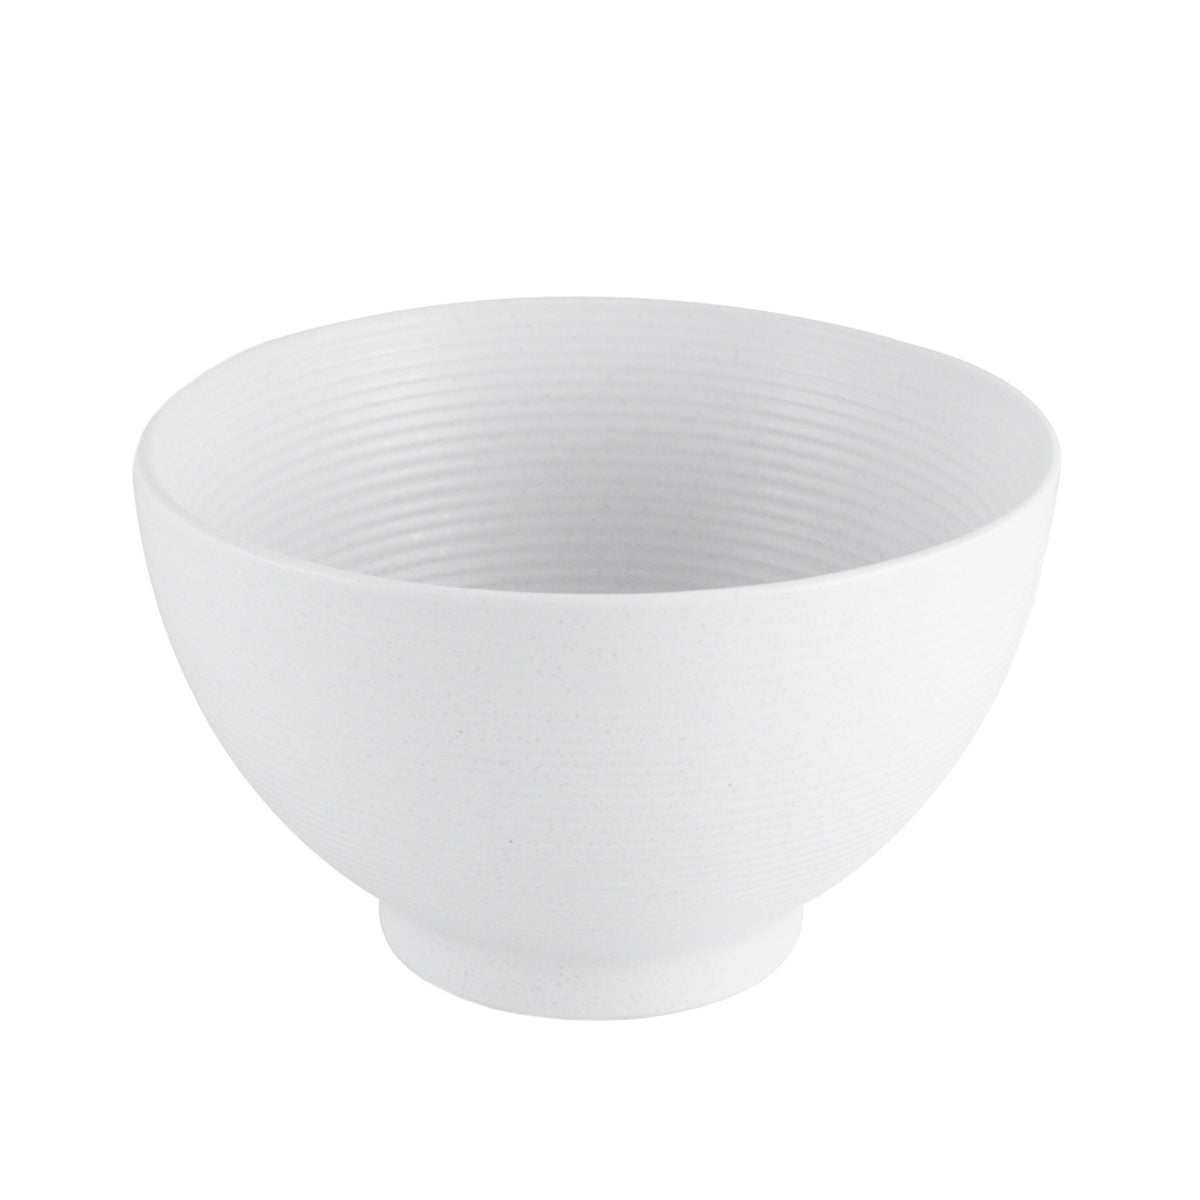 "Lined White Noodle and Donburi Bowl 29 fl oz / 6"" dia"